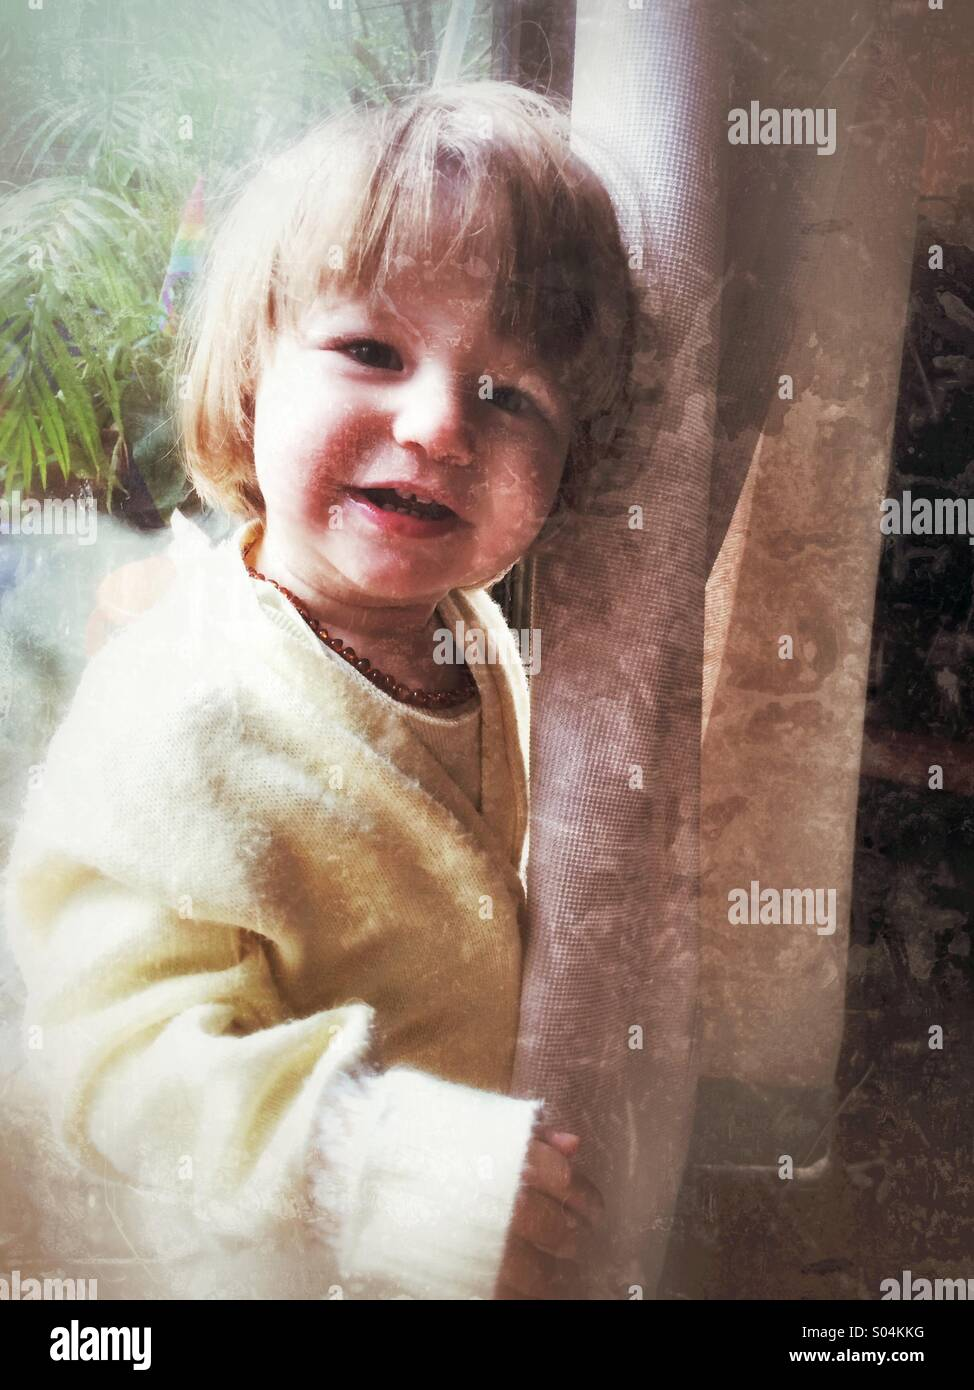 Toddler girl looking at camera happy - Stock Image